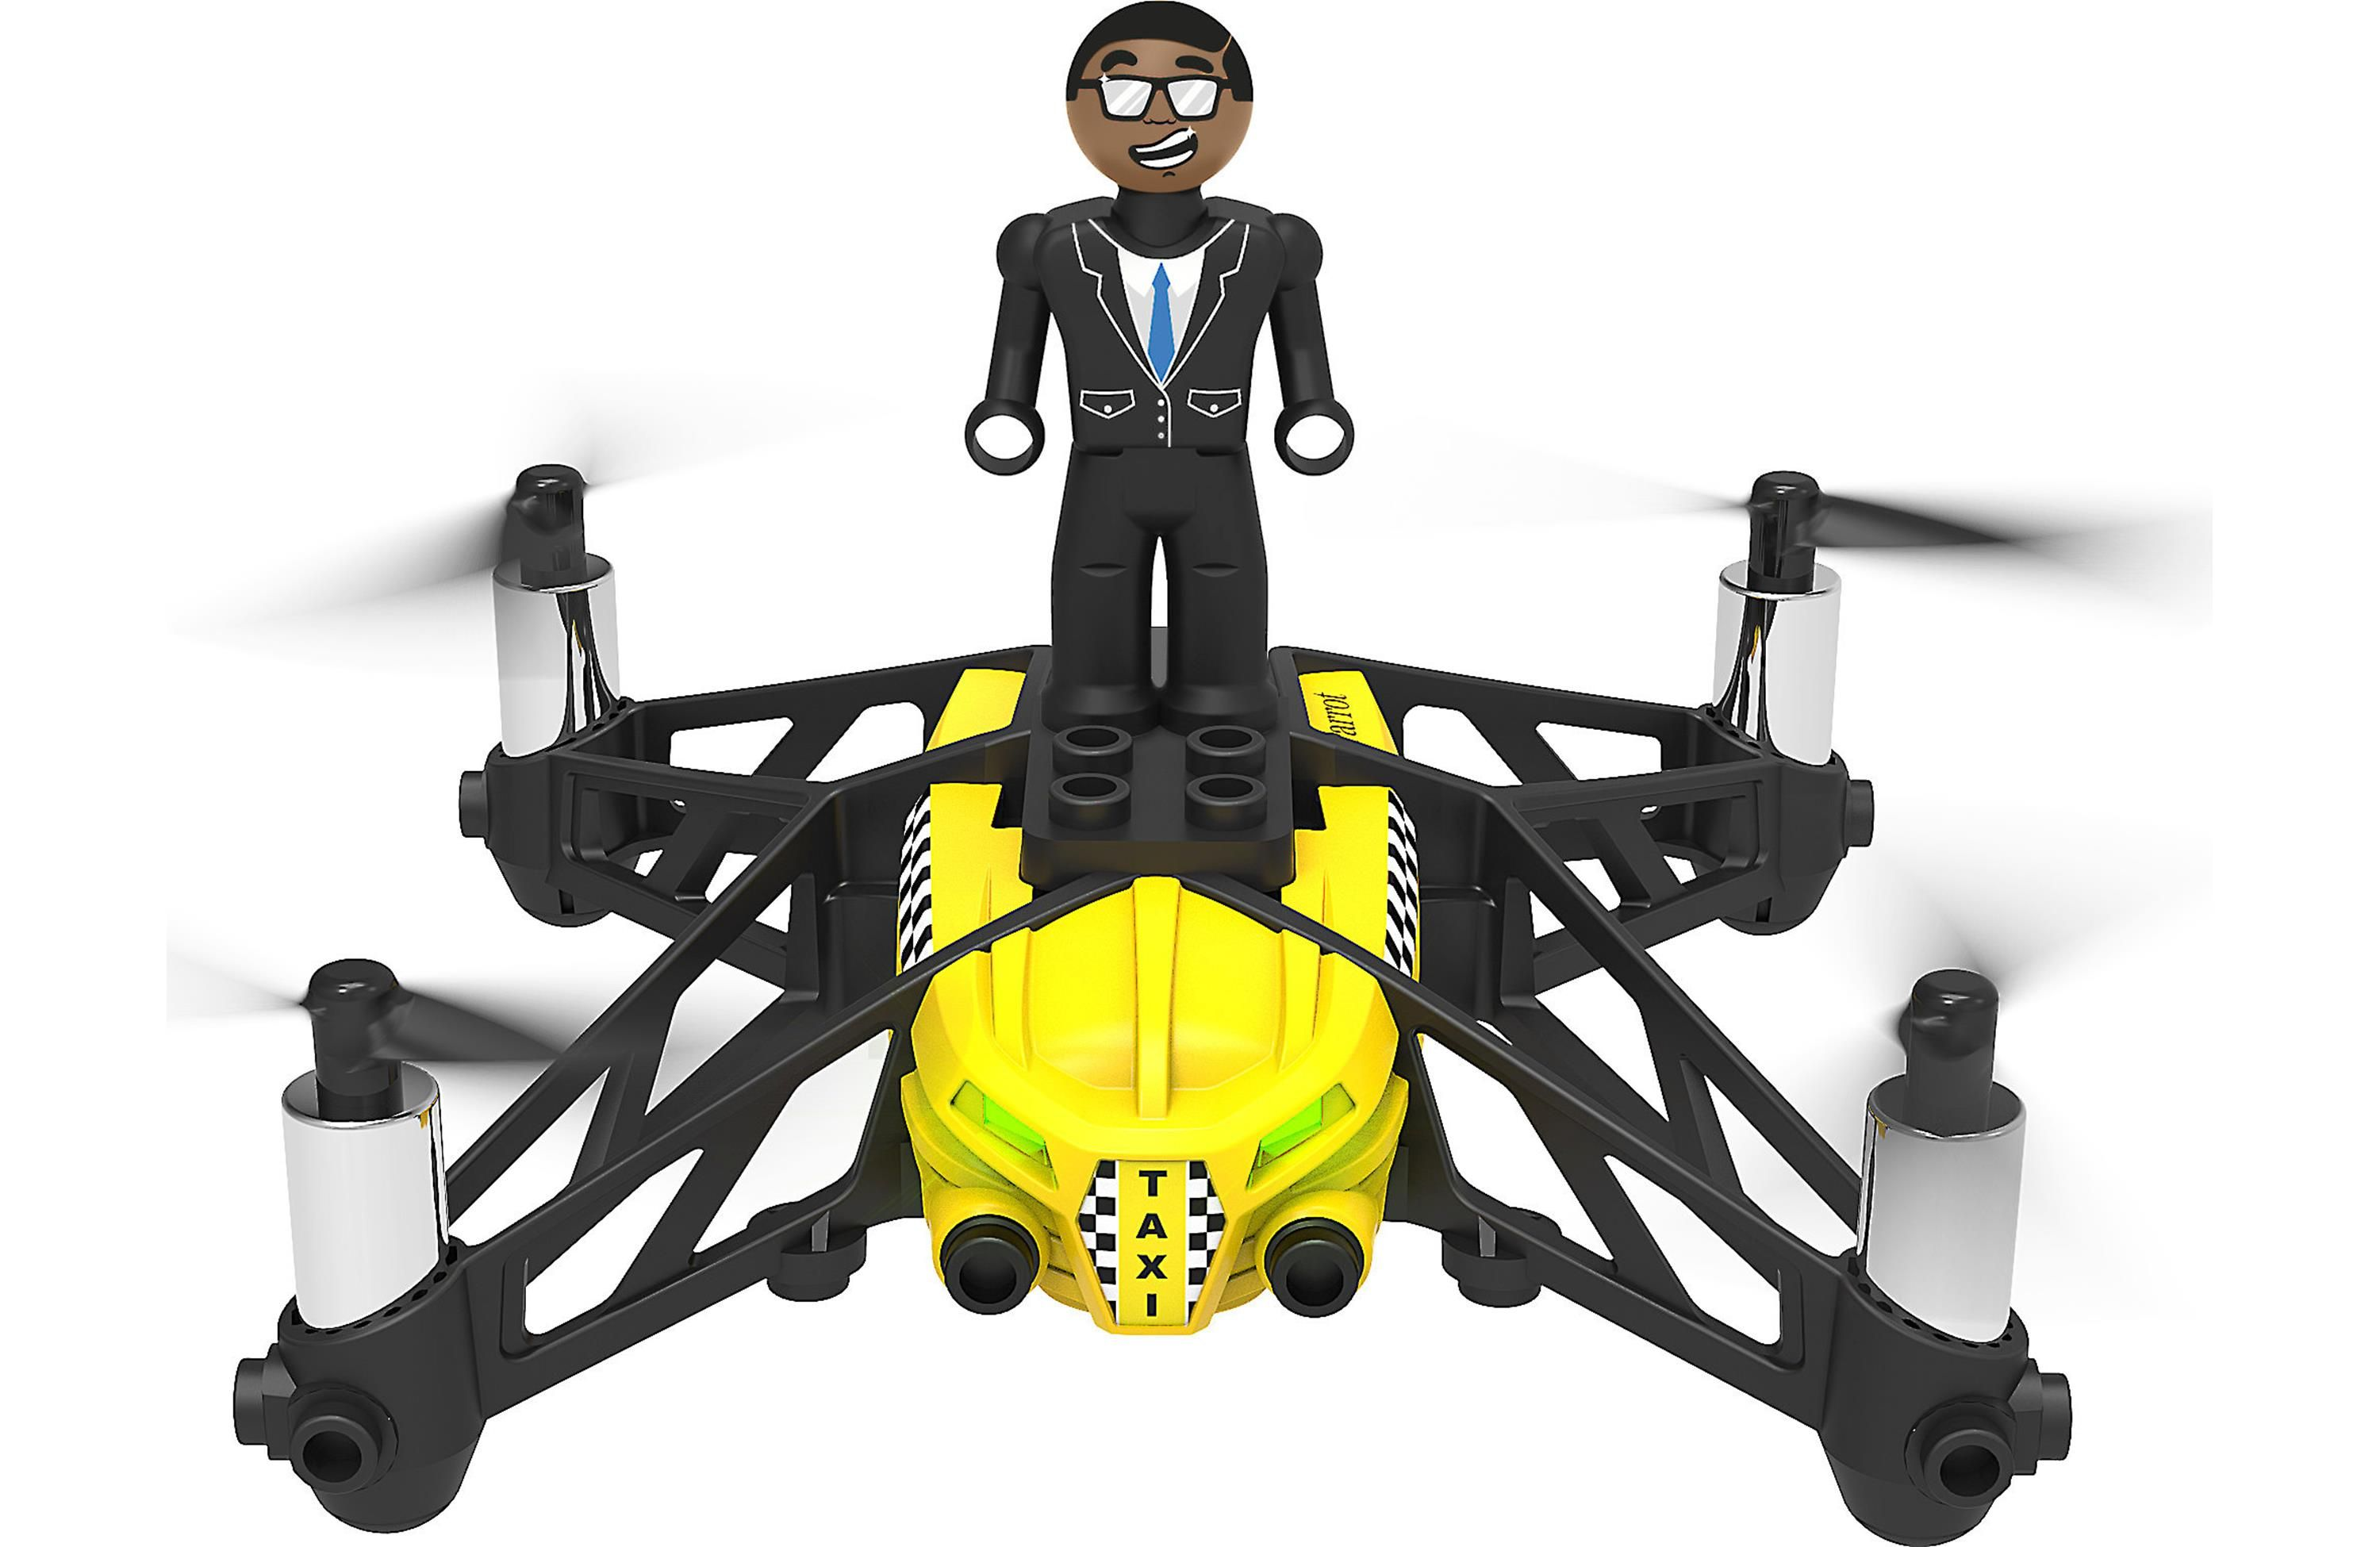 Parrot's Travis Airborne Cargo quadcopter drone is only